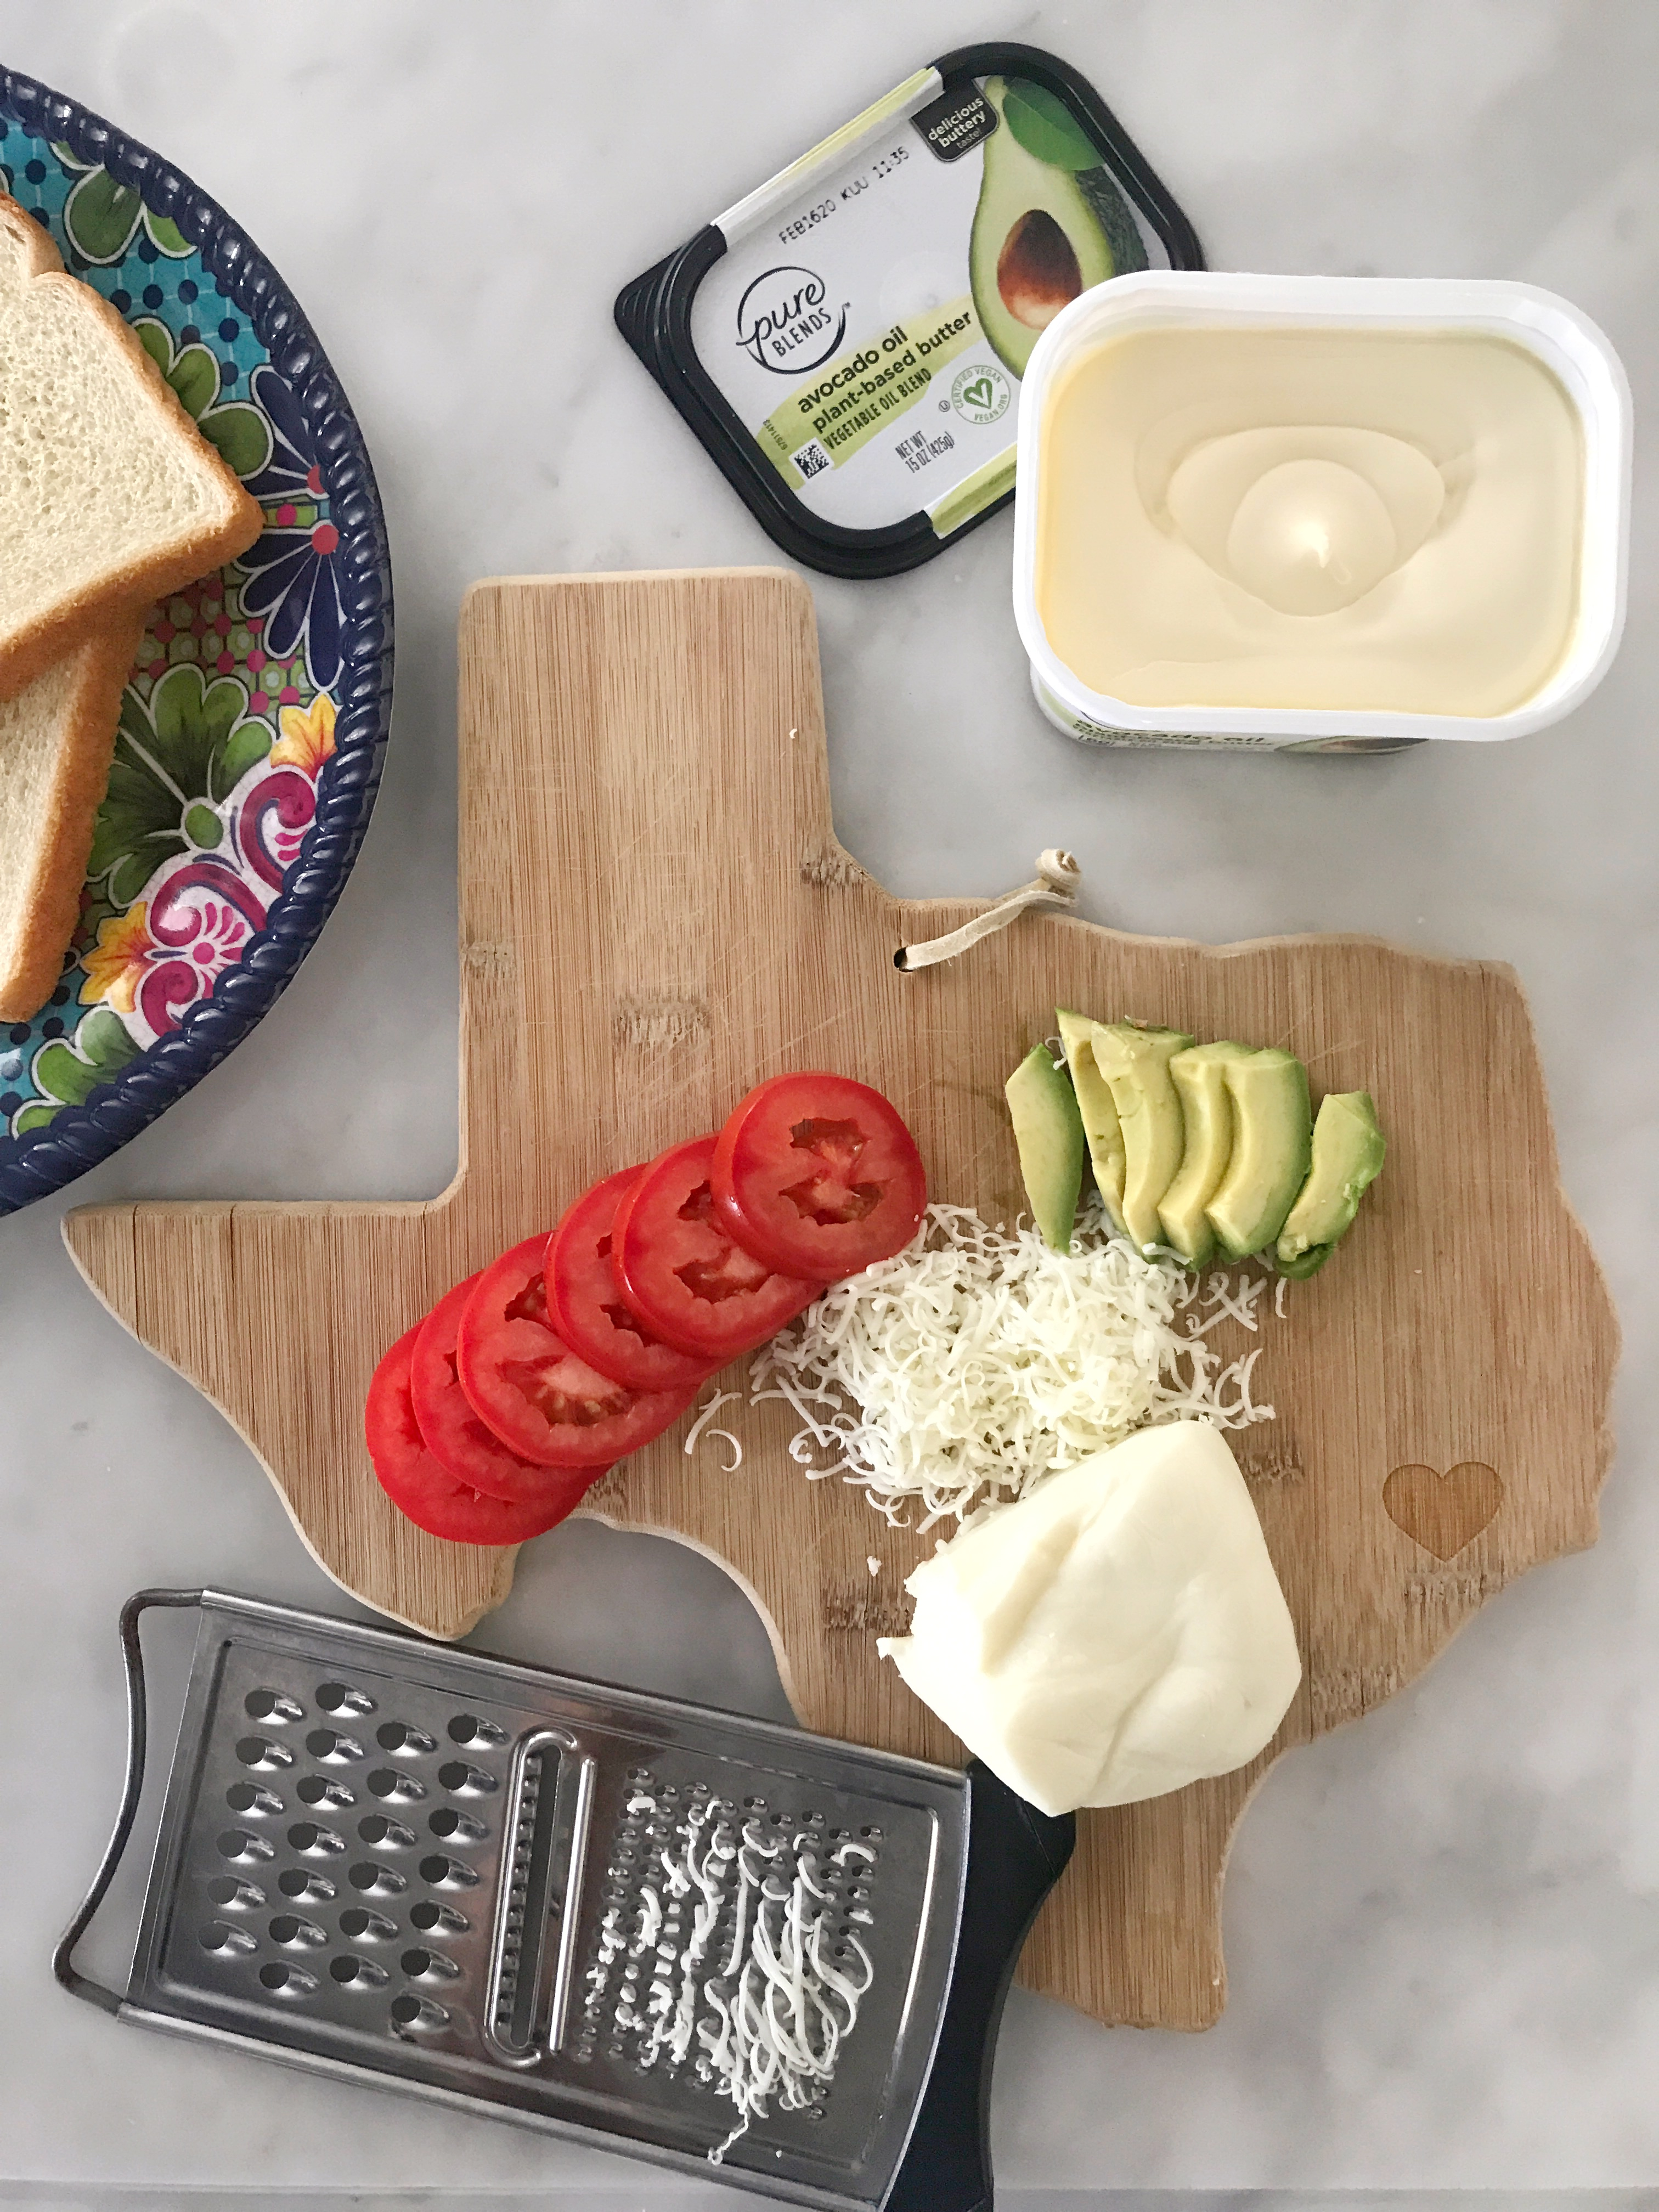 Tomato and Avocado grilled cheese sandwich ingredients